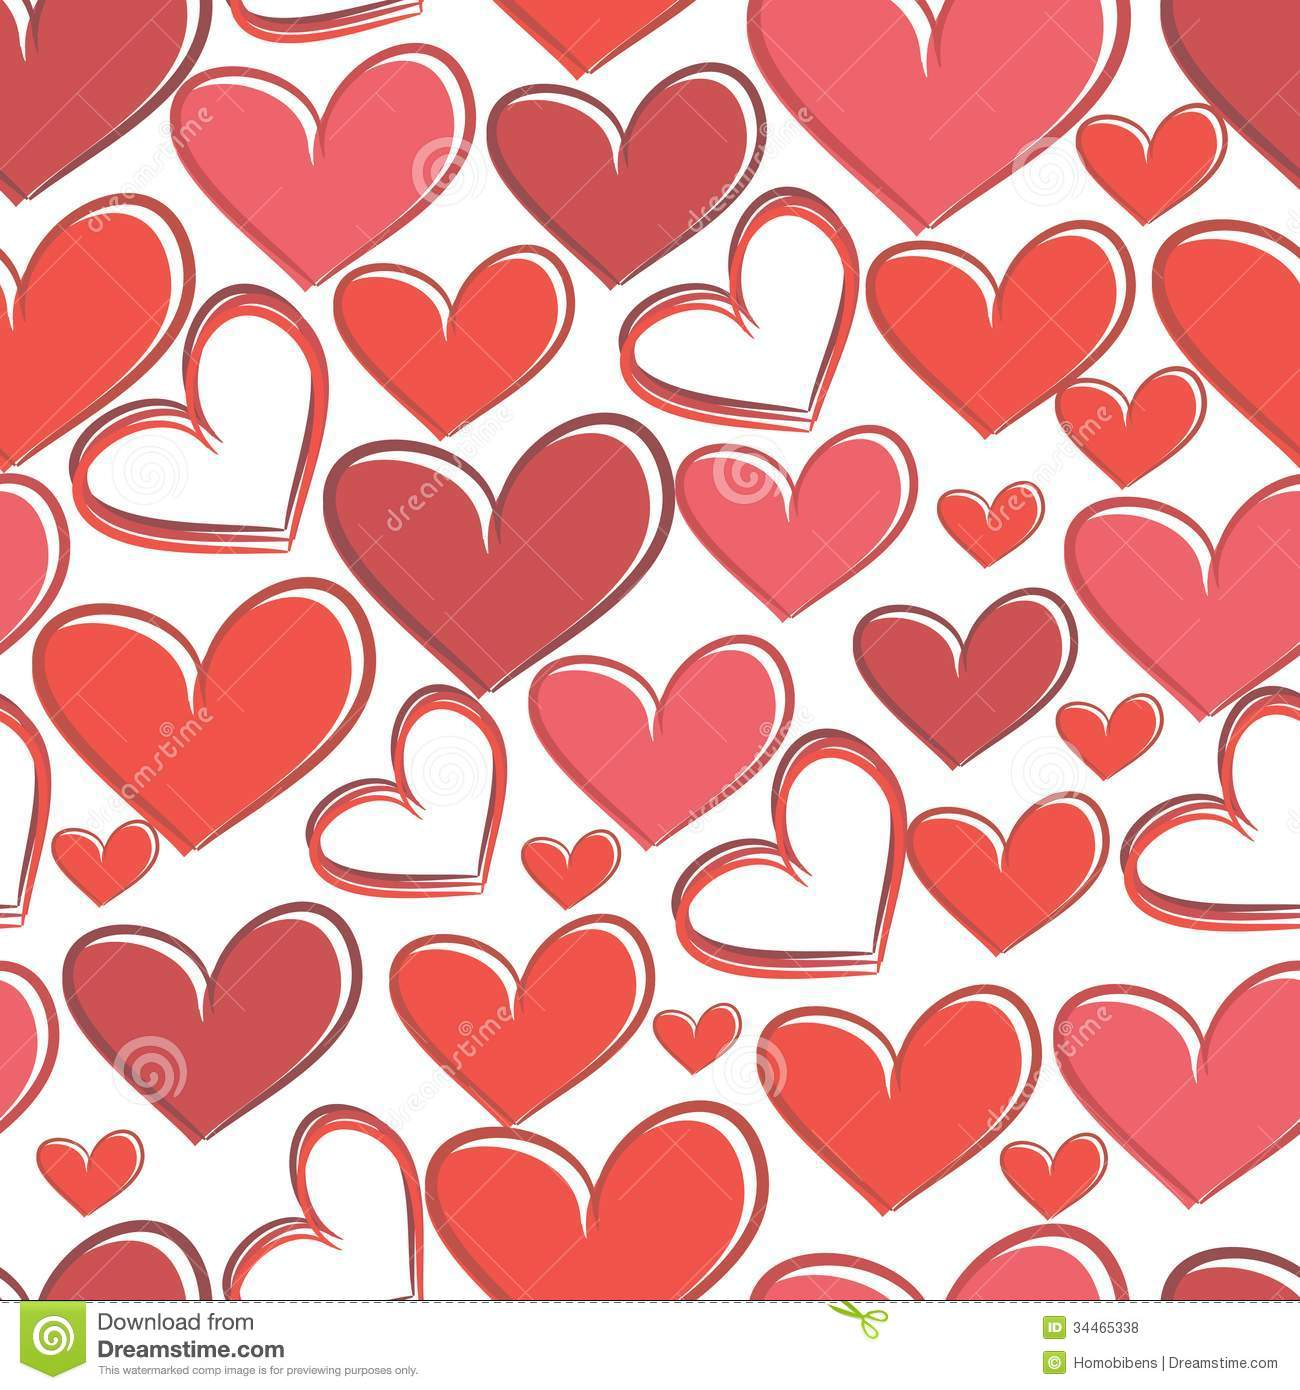 Seamless pattern with hearts on a white background